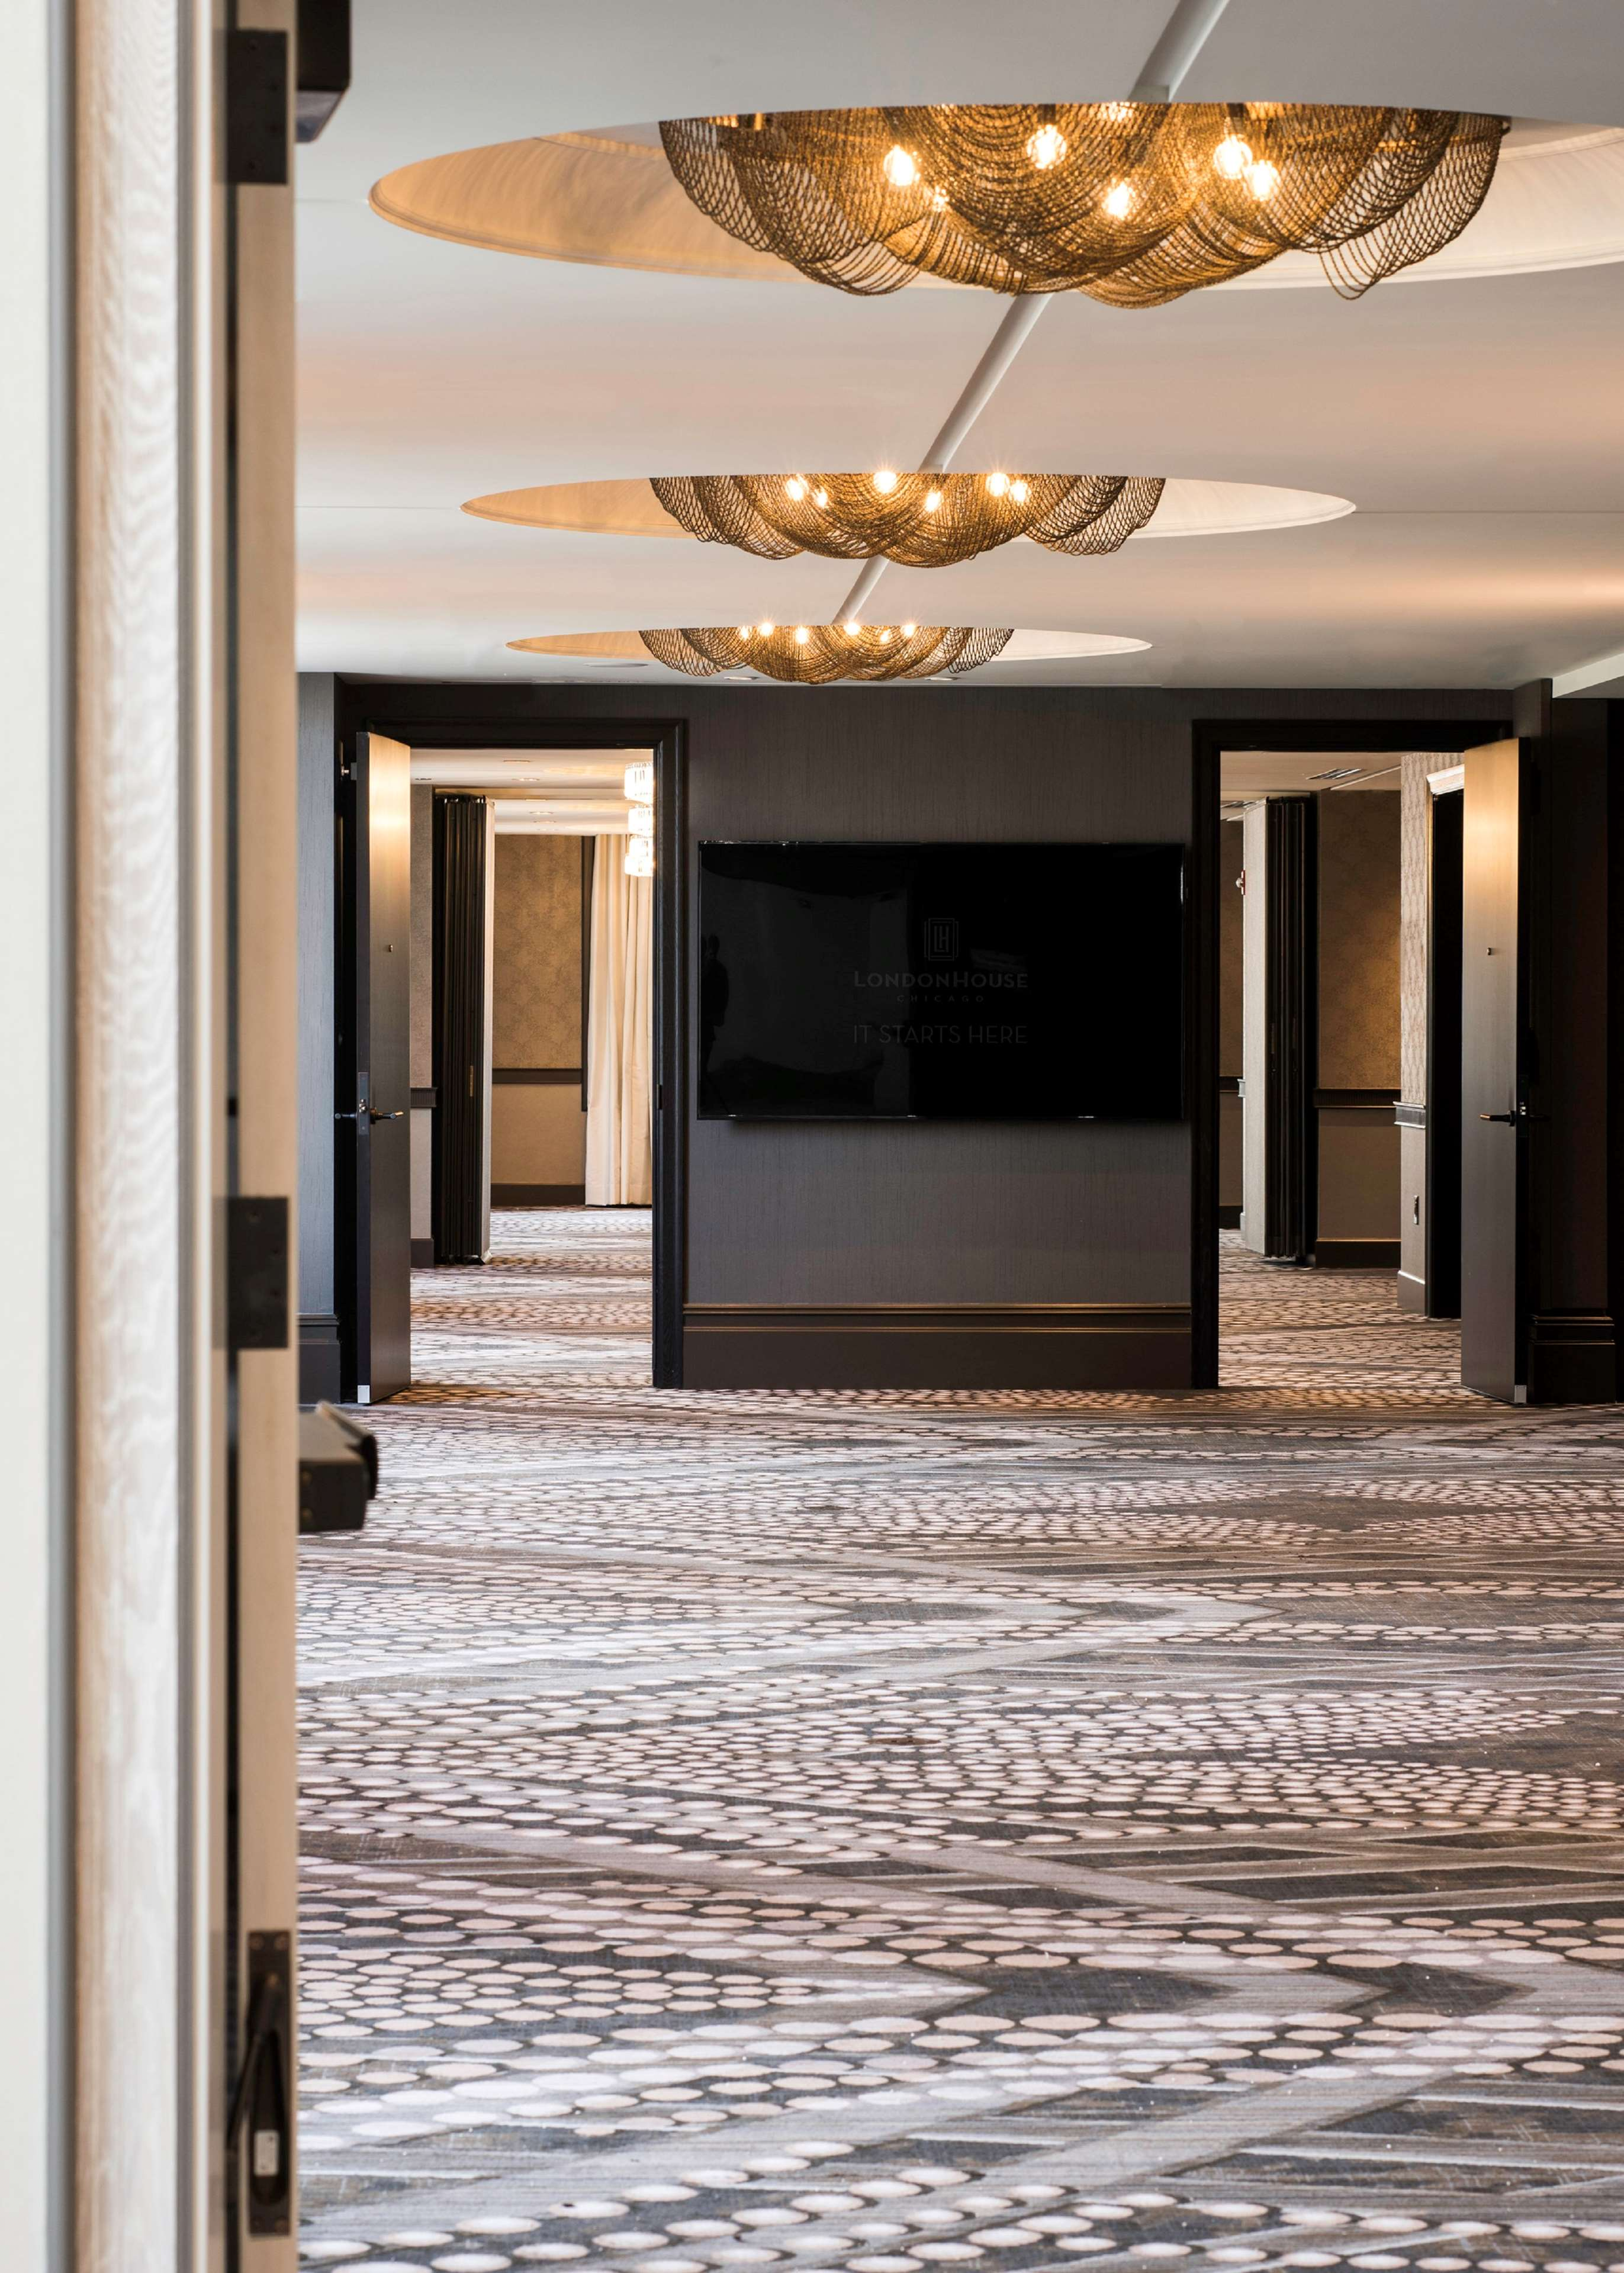 LondonHouse Chicago, Curio Collection by Hilton image 32